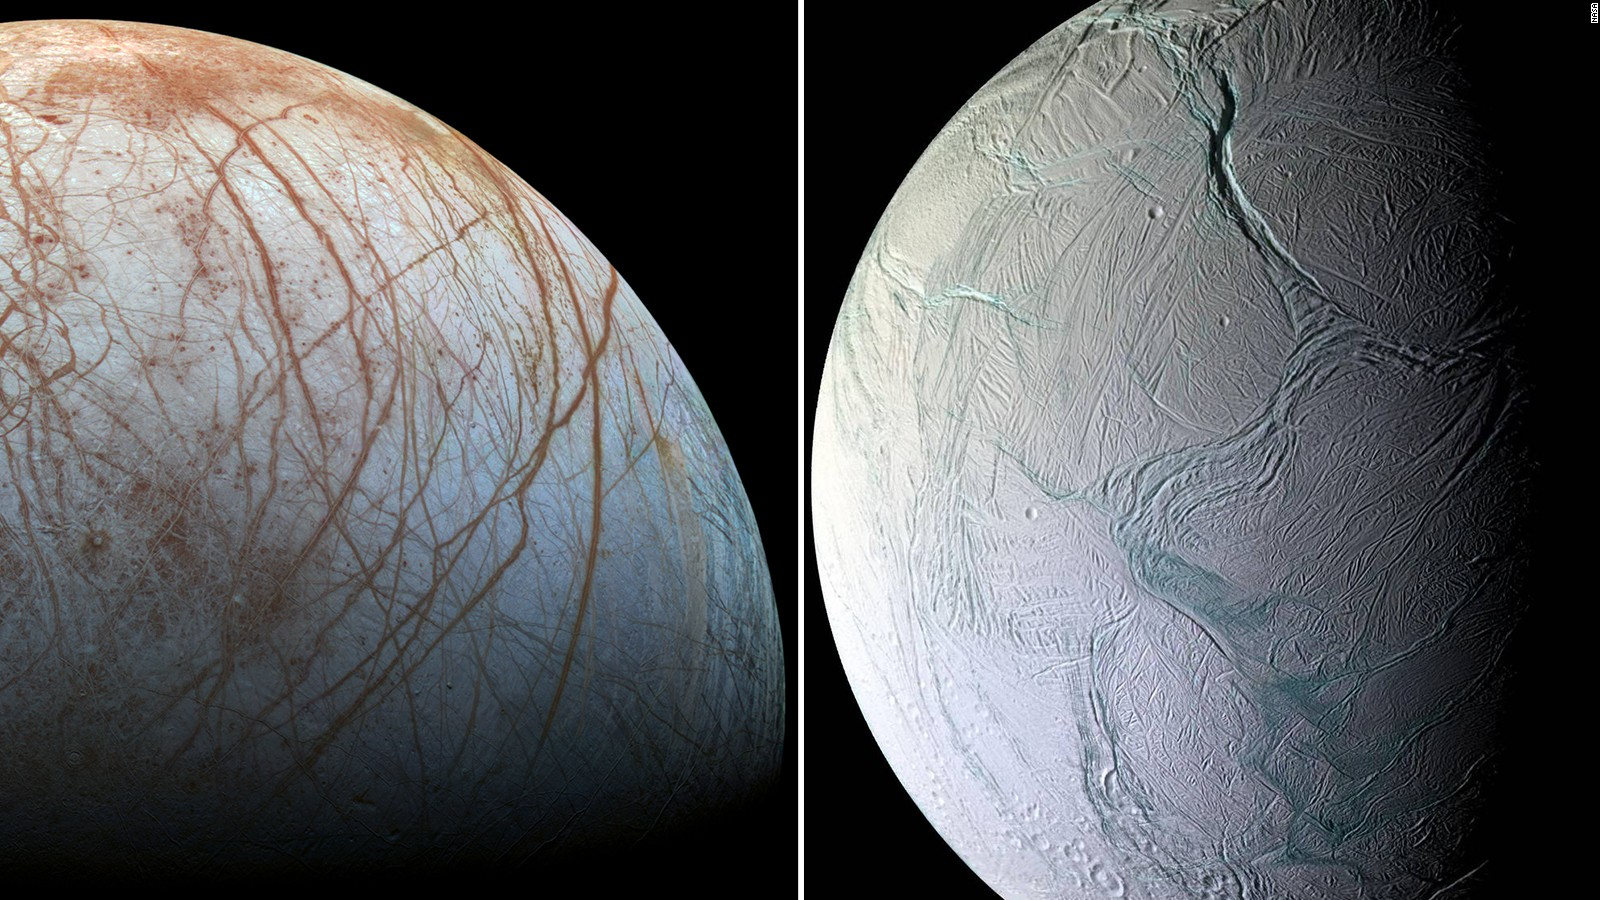 Nasa Nearby Ocean Worlds Could Be Best Bet For Life Beyond Earth Cnn 451plutosolarsystemdiagramjpg